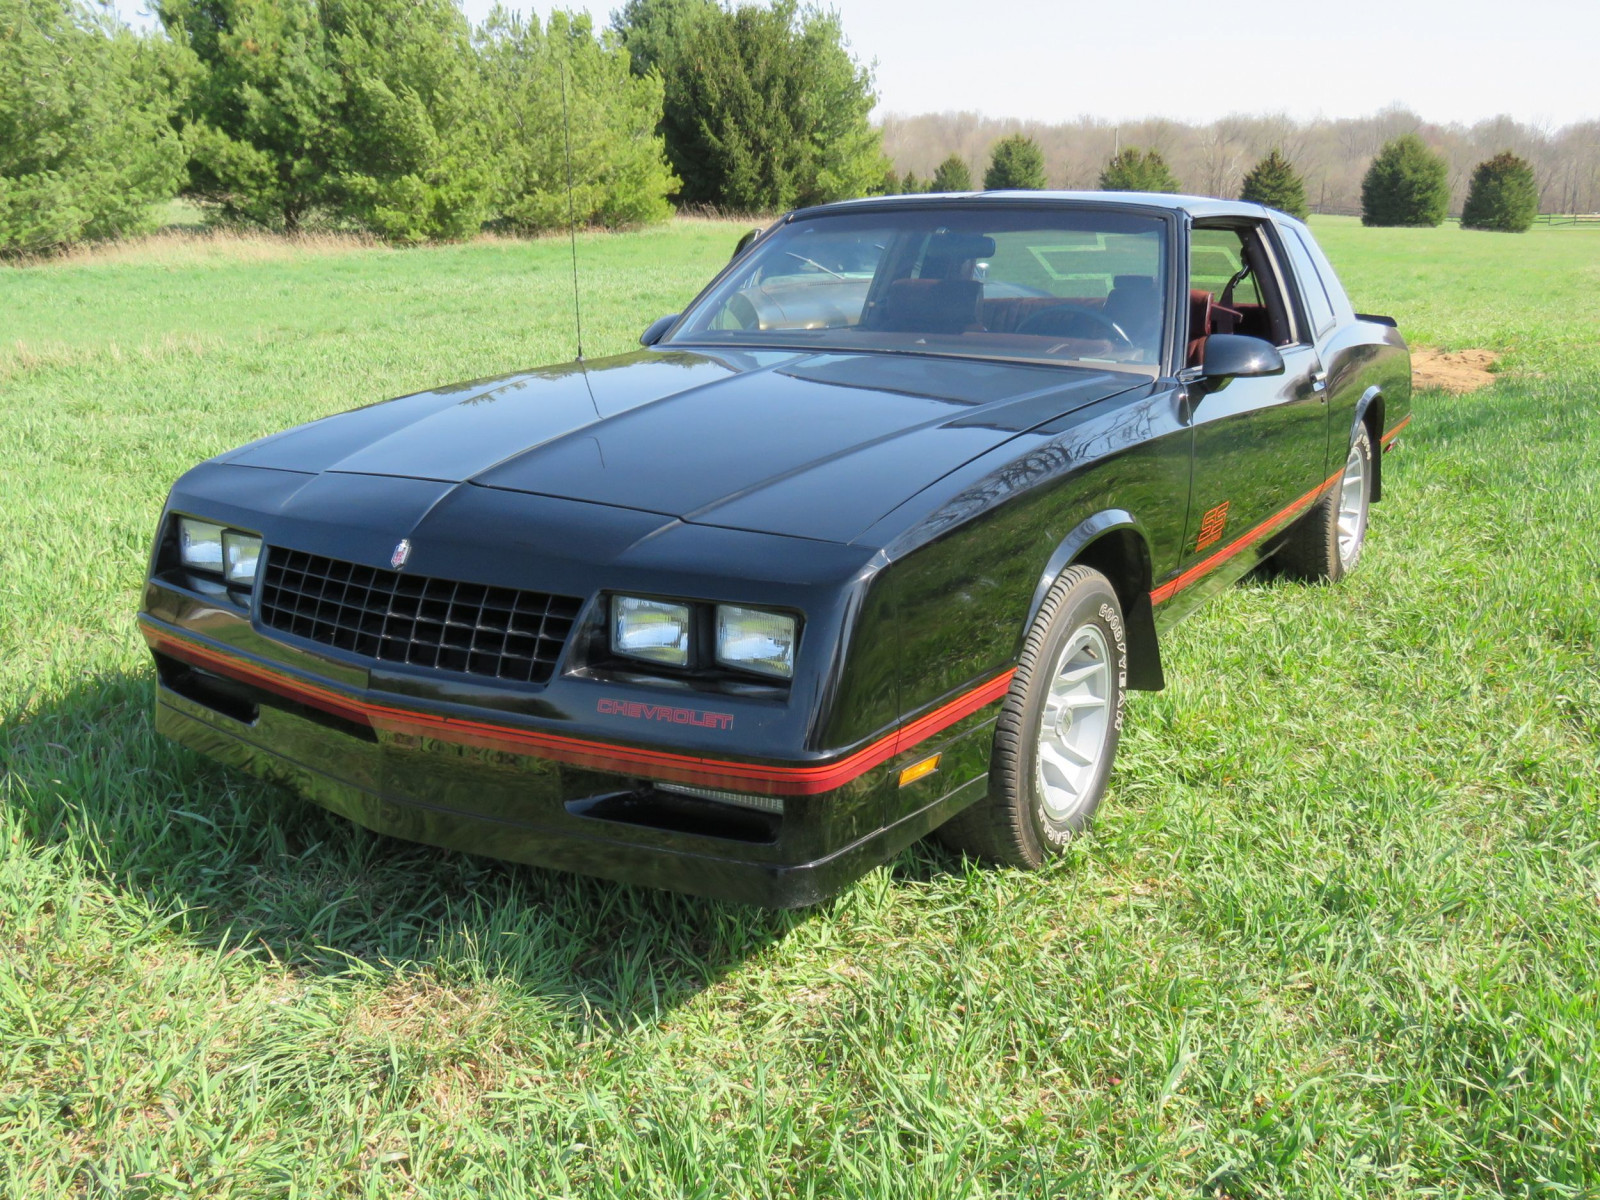 1987 Chevrolet Monte Carlo SS - Image 1